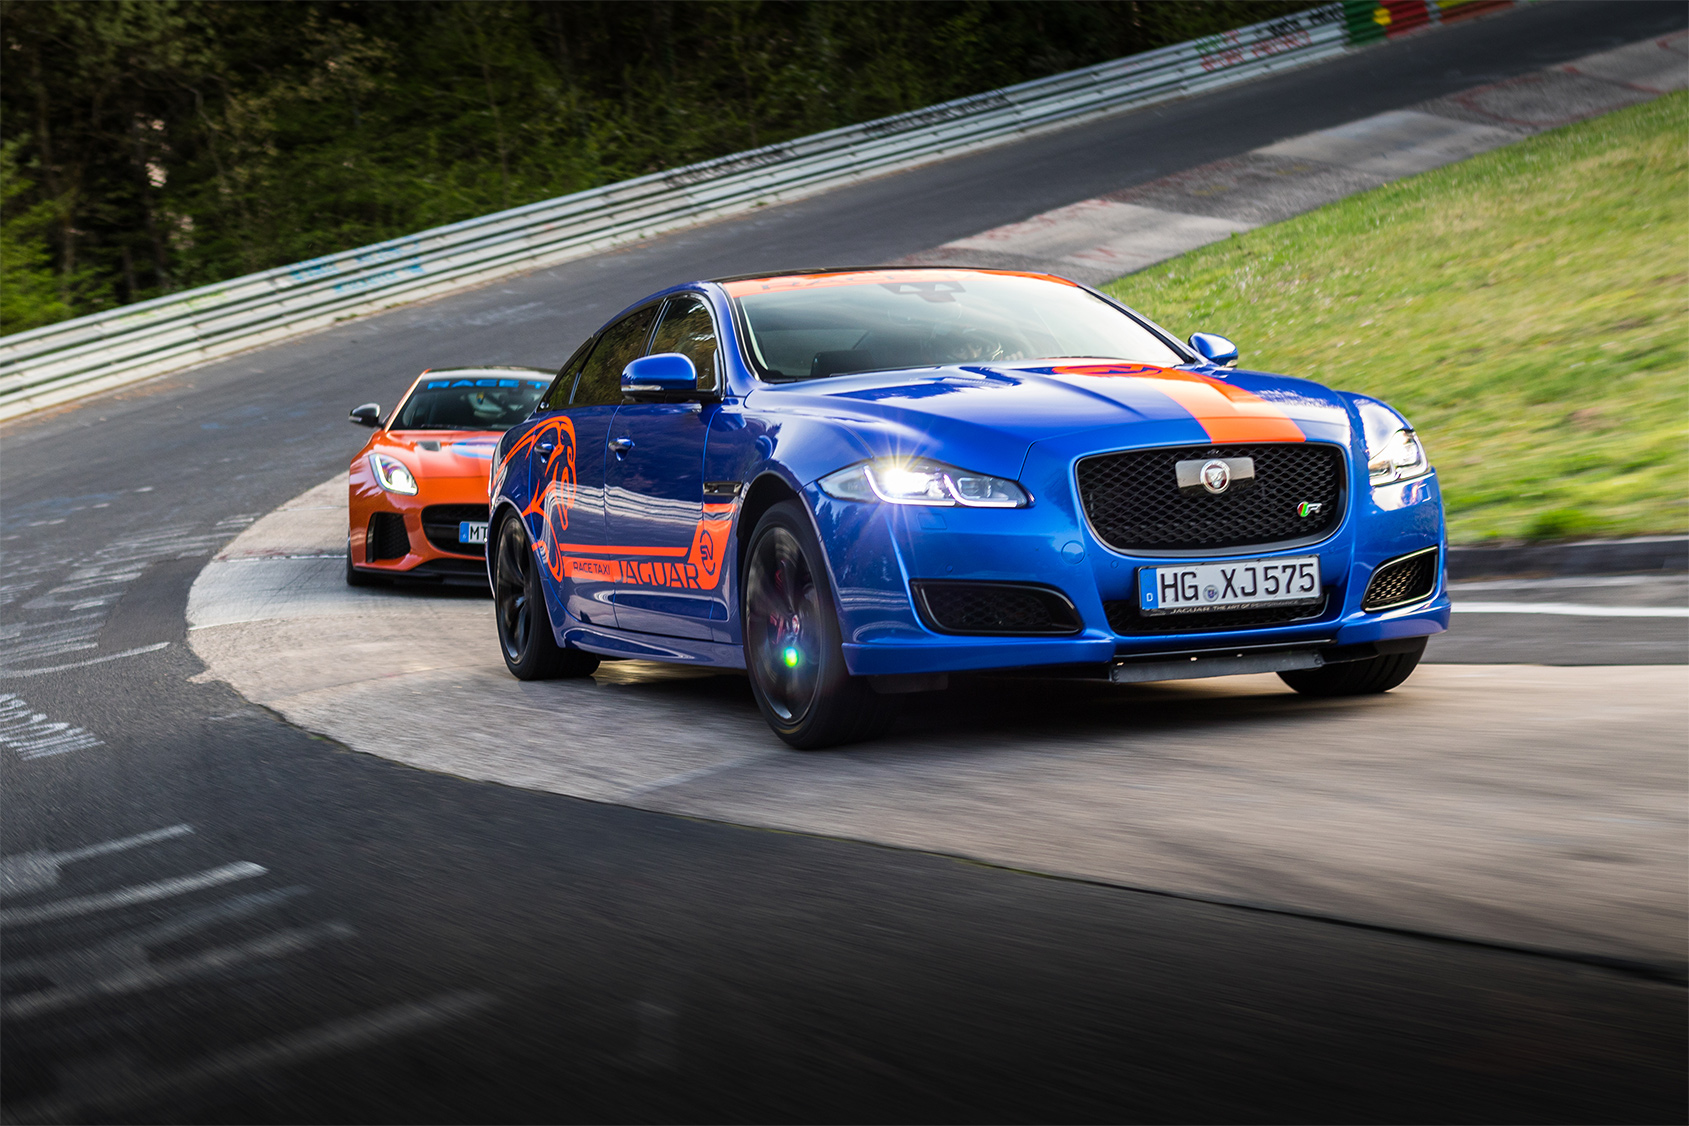 TrackWorthy - Jaguar F-TYPE SVR and XJR575 Nurburgring Race Taxis (3)